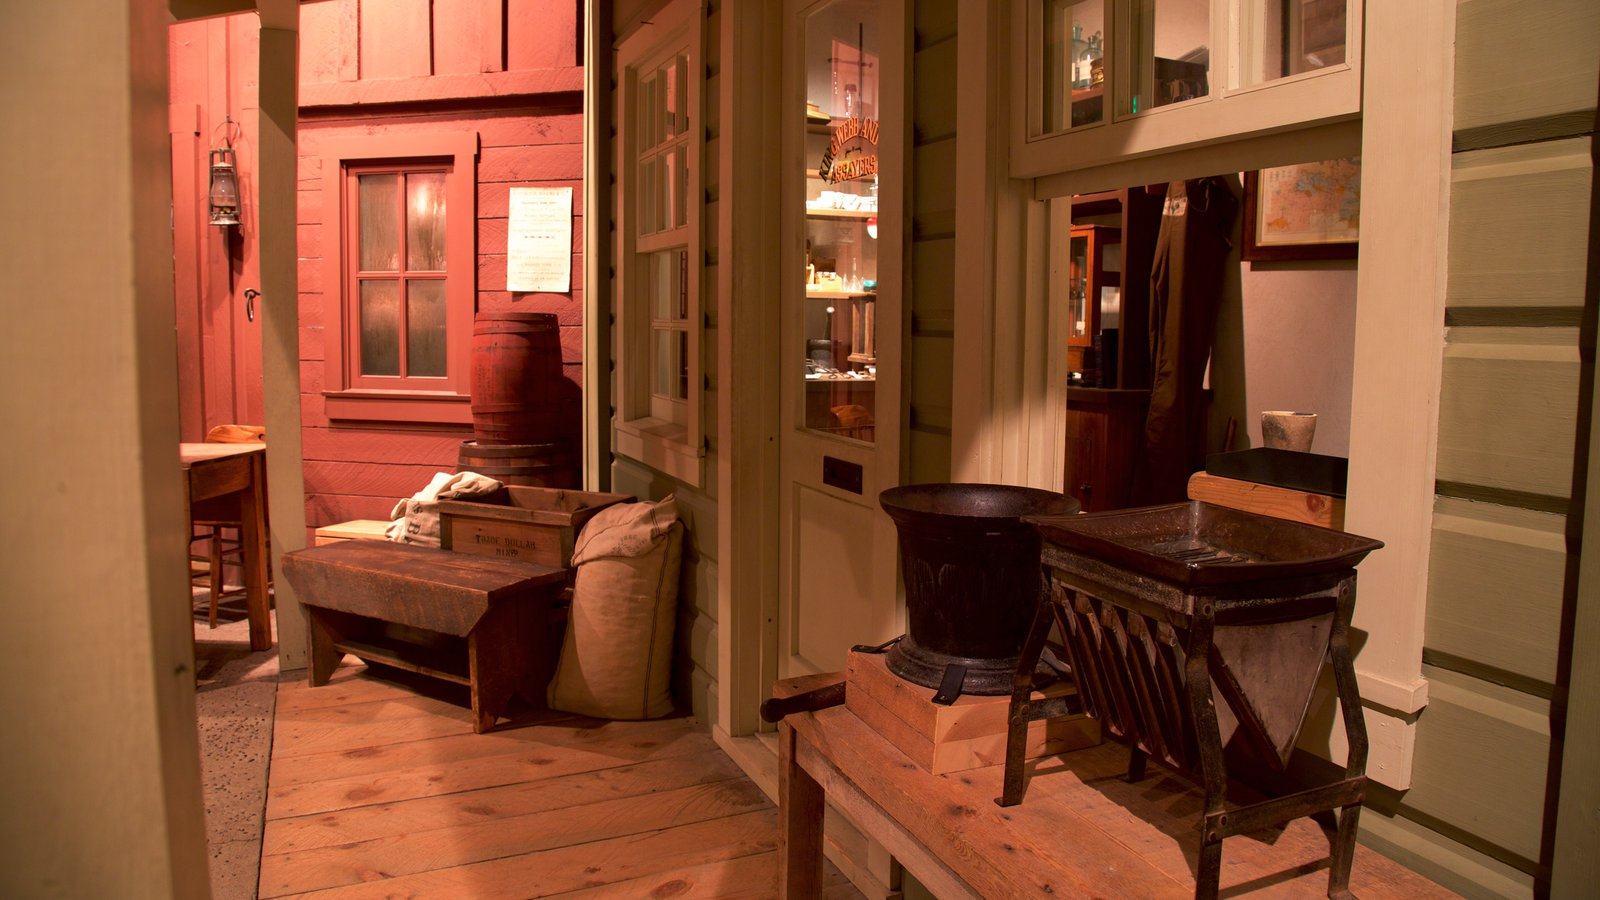 High Desert Museum Featuring A House And Interior Views